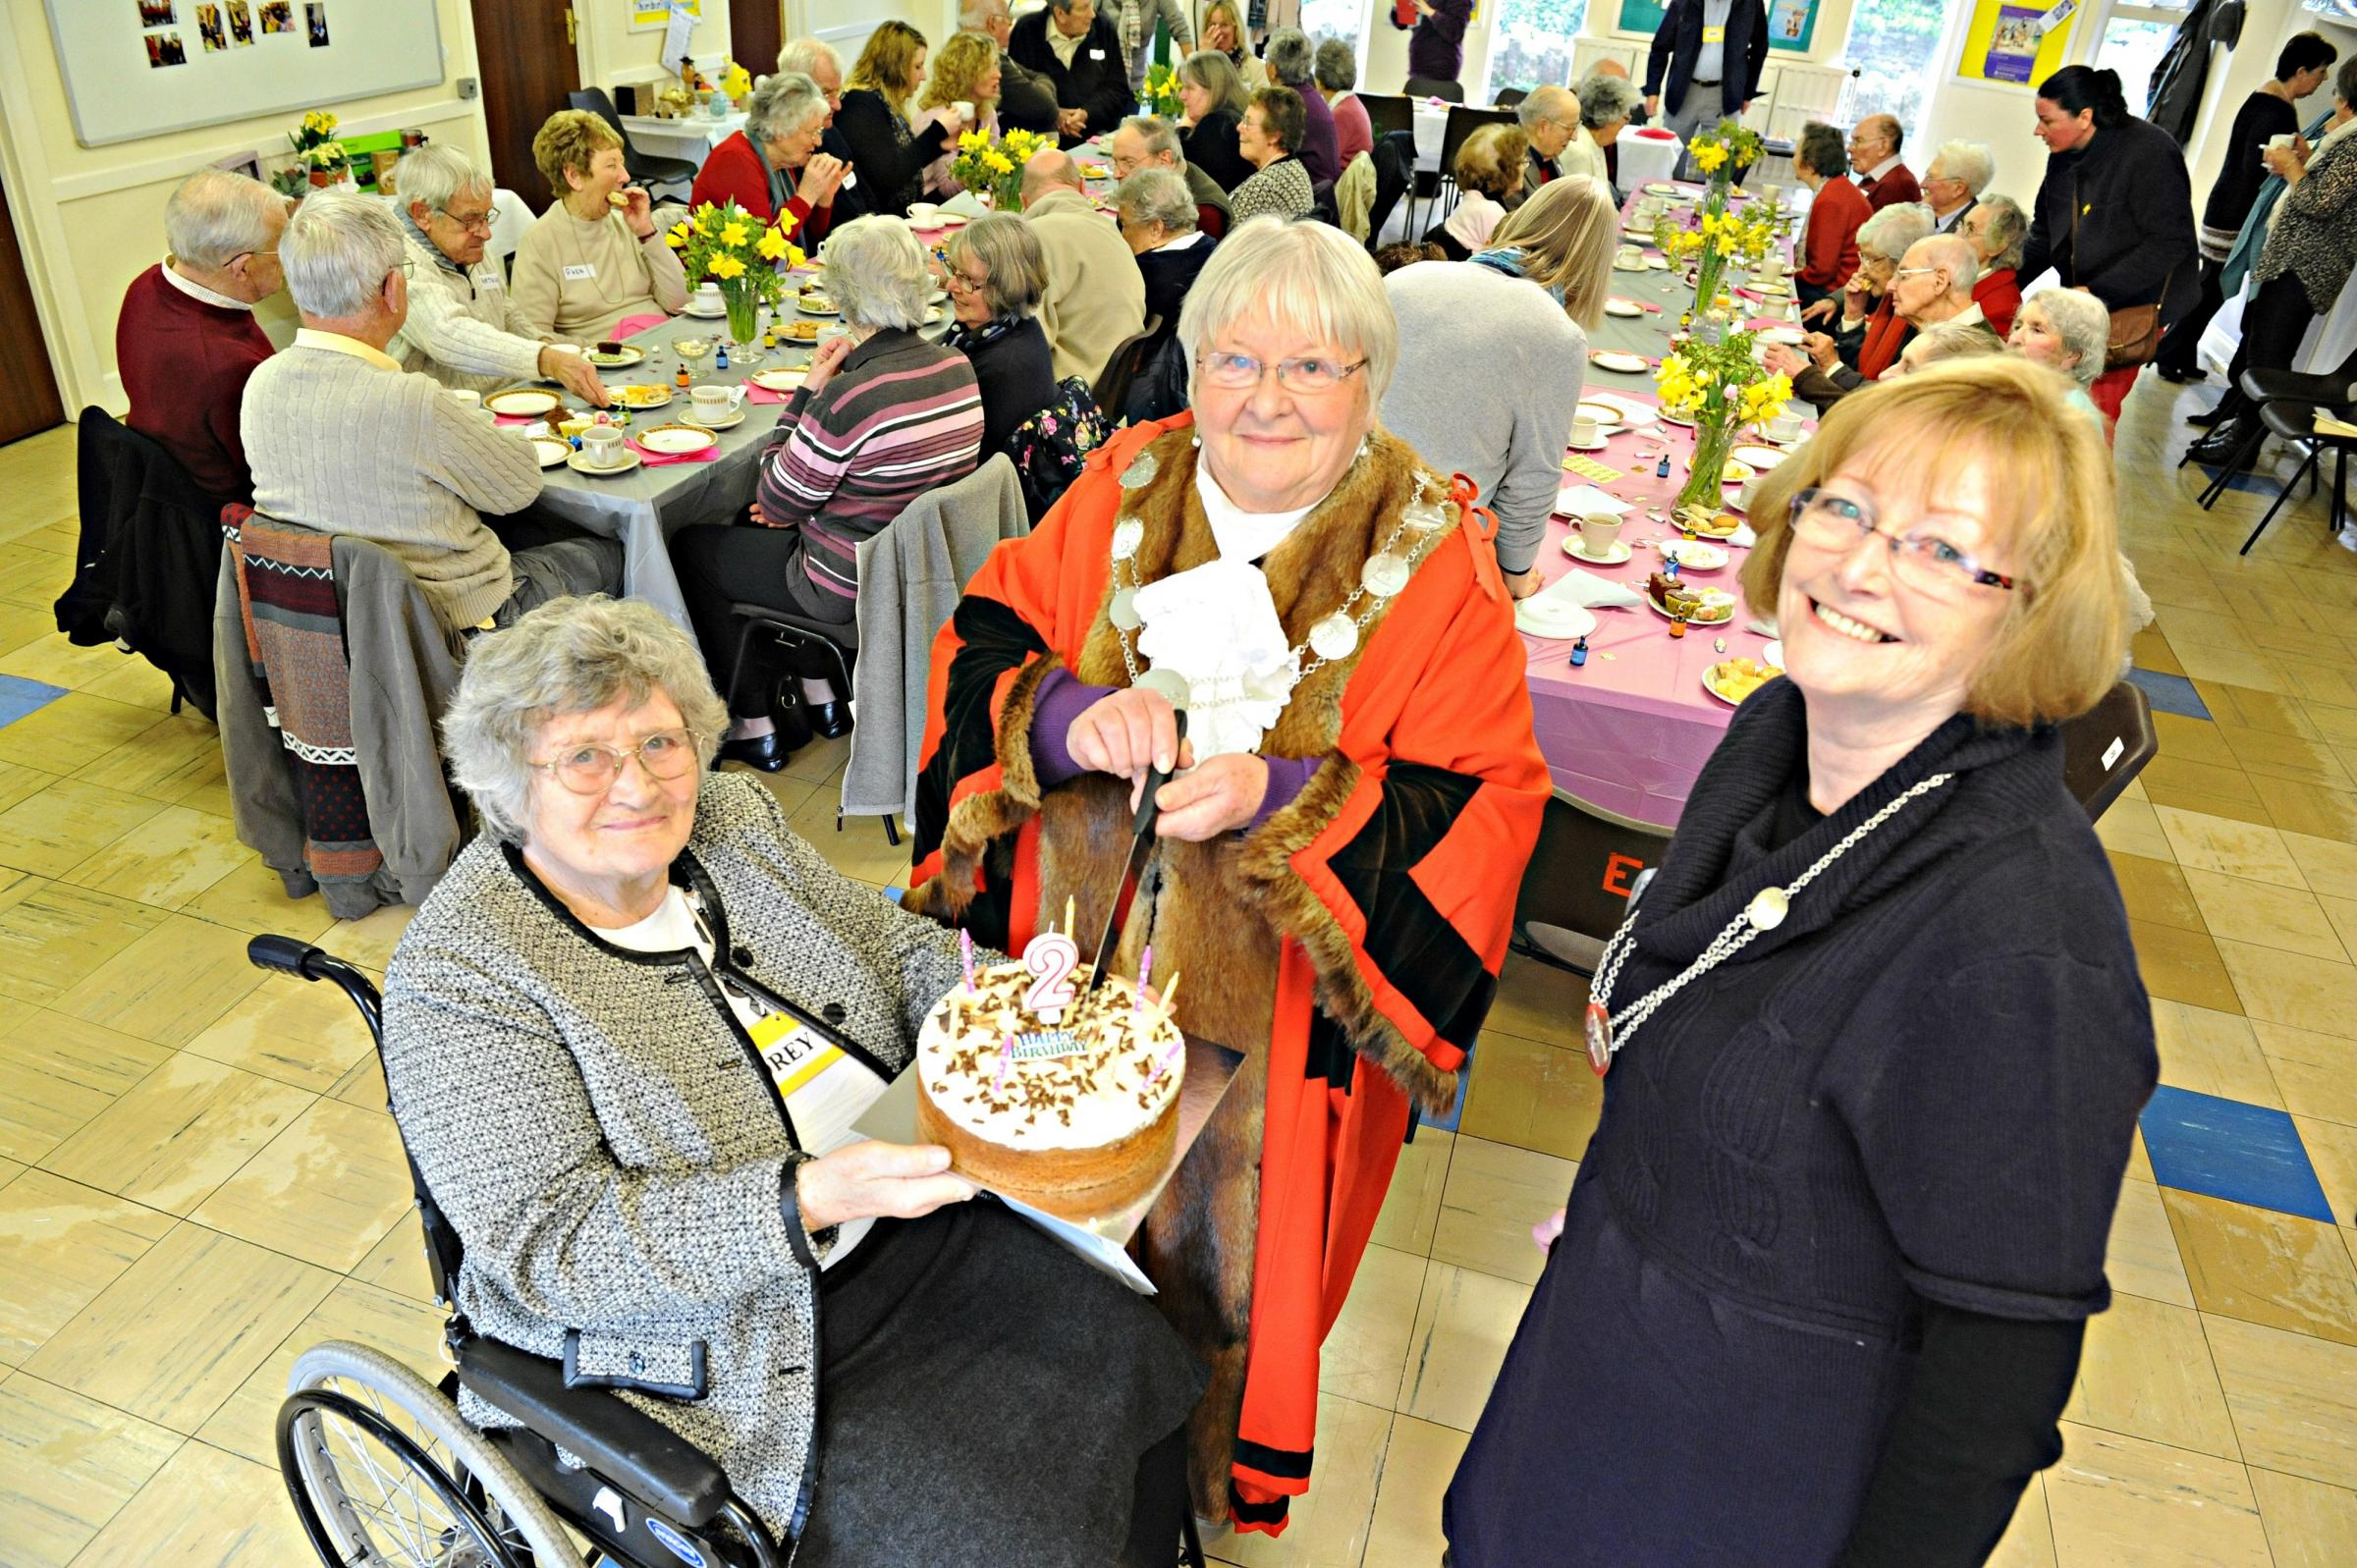 Audrey Green chairman of the Thornbury Memory Cafe with  Mayor of Thornbury  Cllr Pam Shipp and her Consort Valerie Vizard and a celebration cake for the groups 2nd anniversary  (4532712)